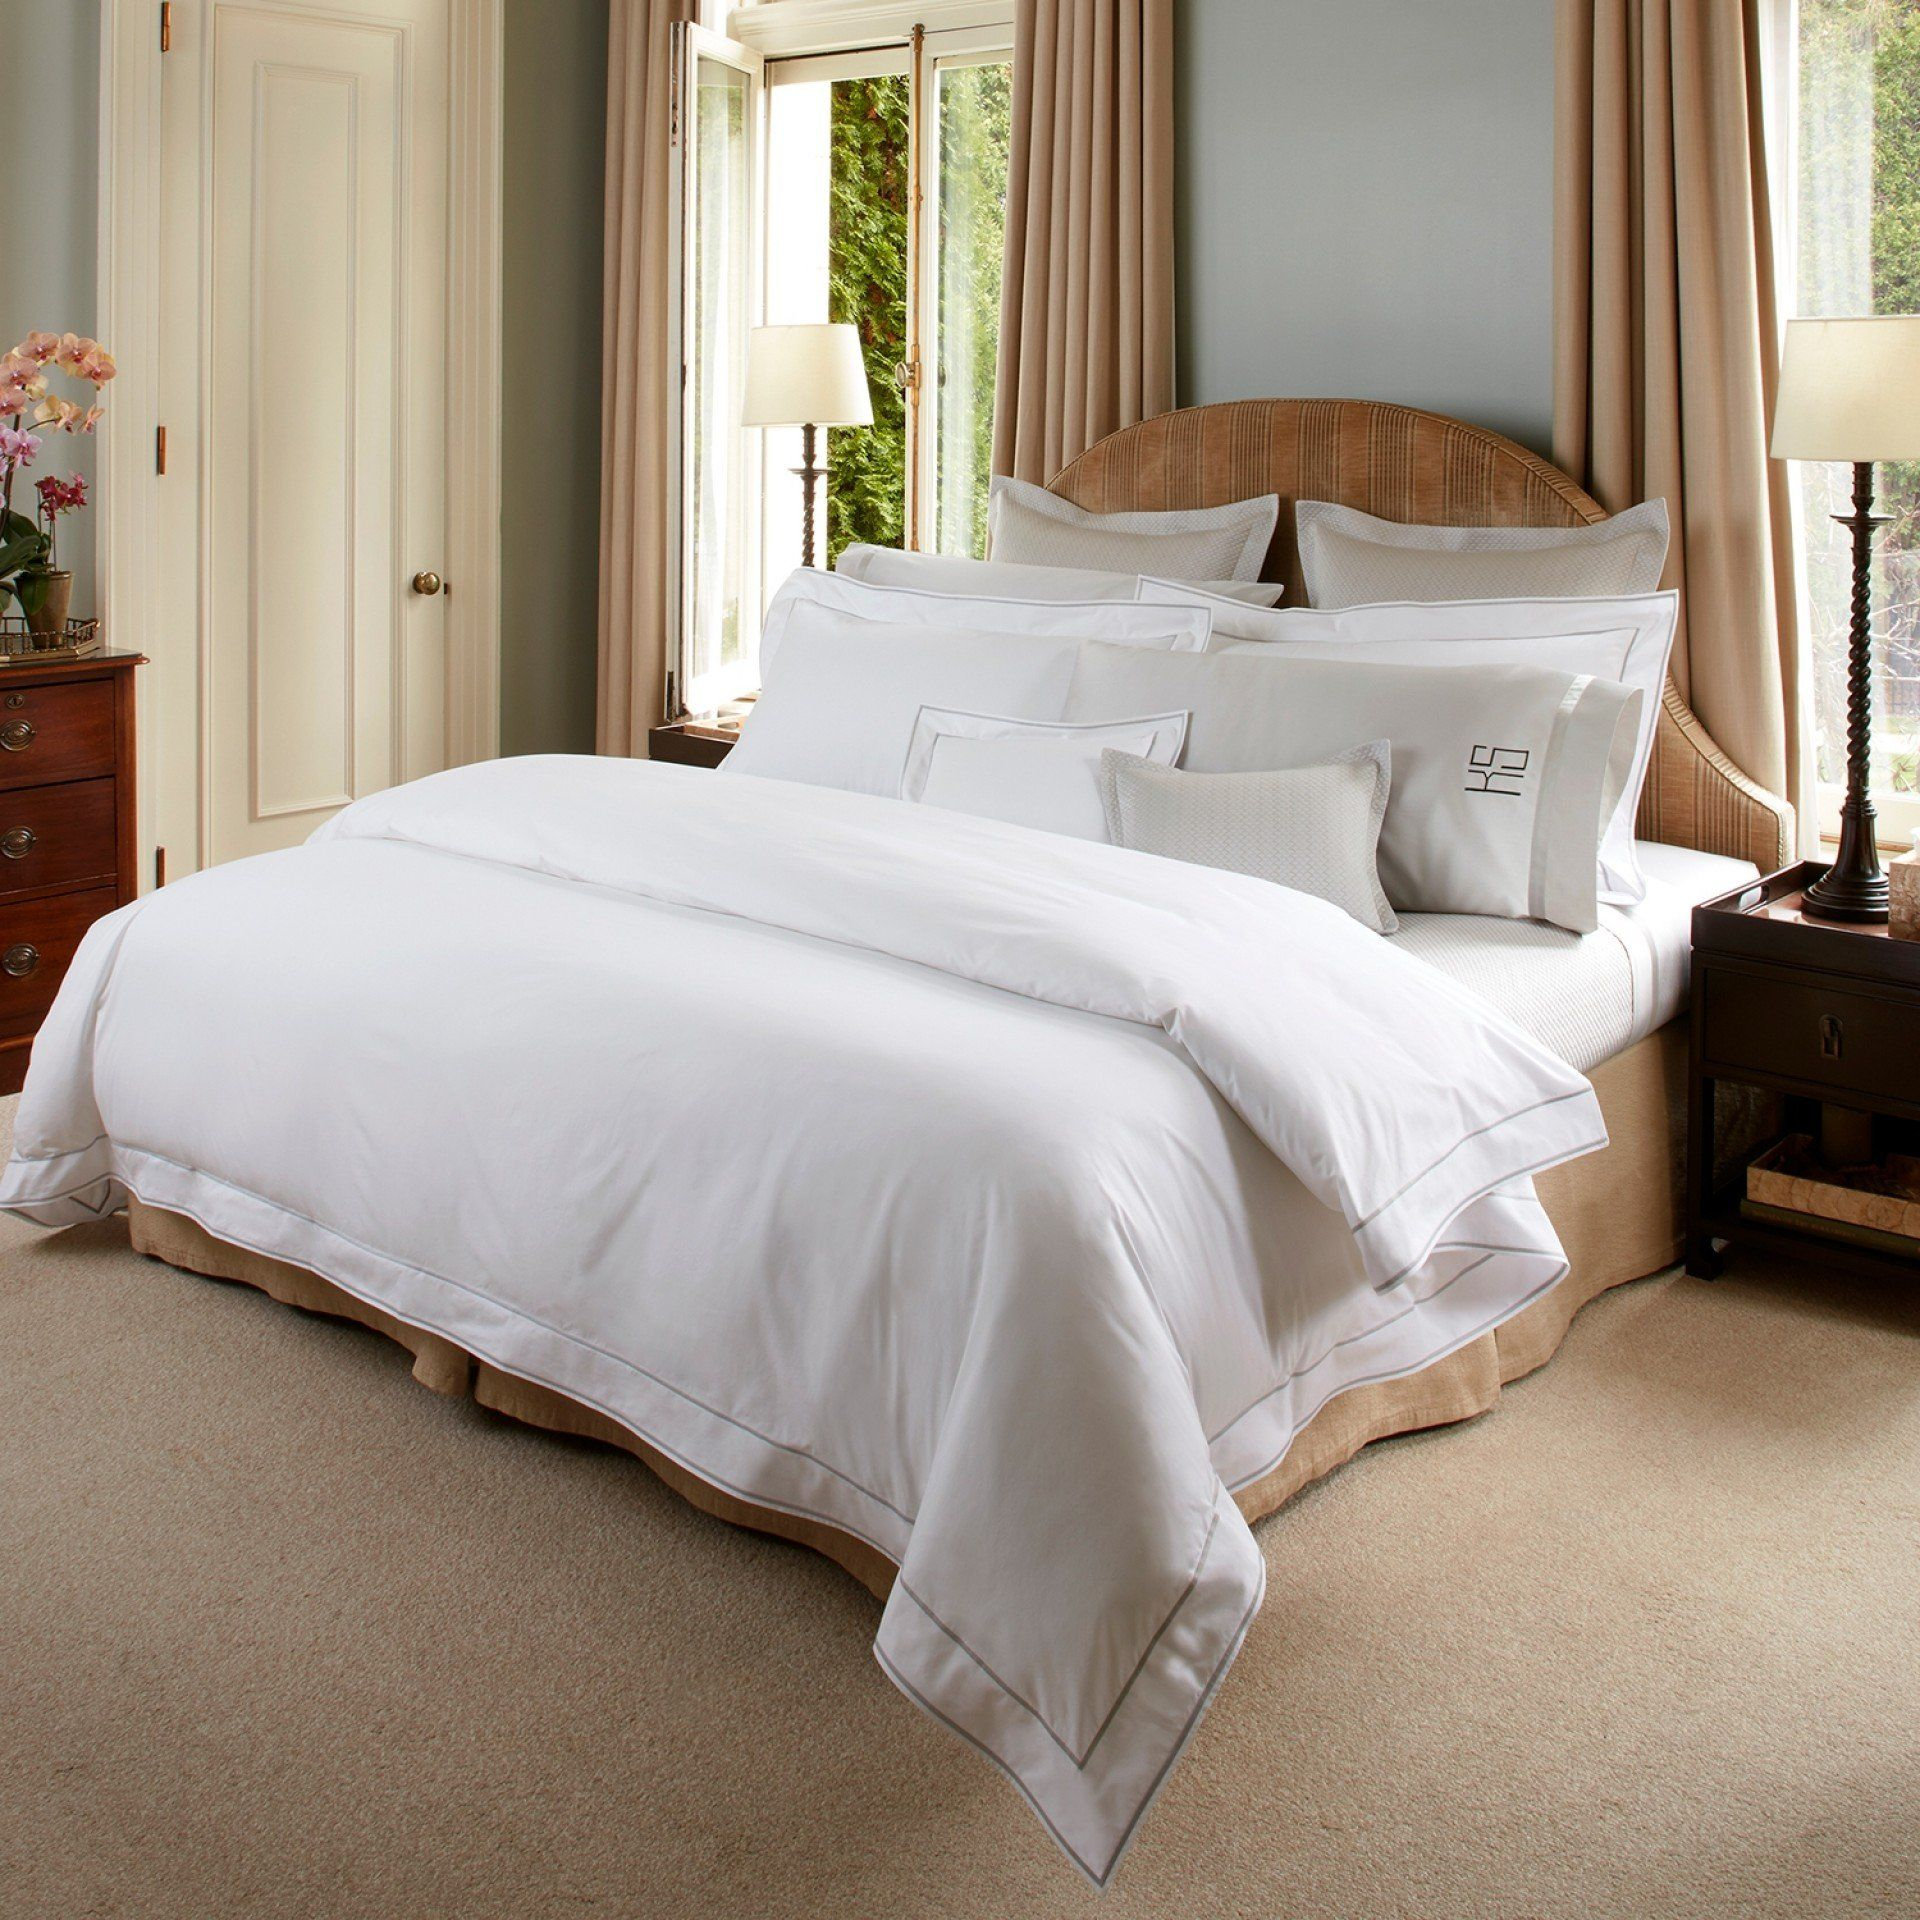 Ansonia Duvets & Shams from Matouk | Fig Linens